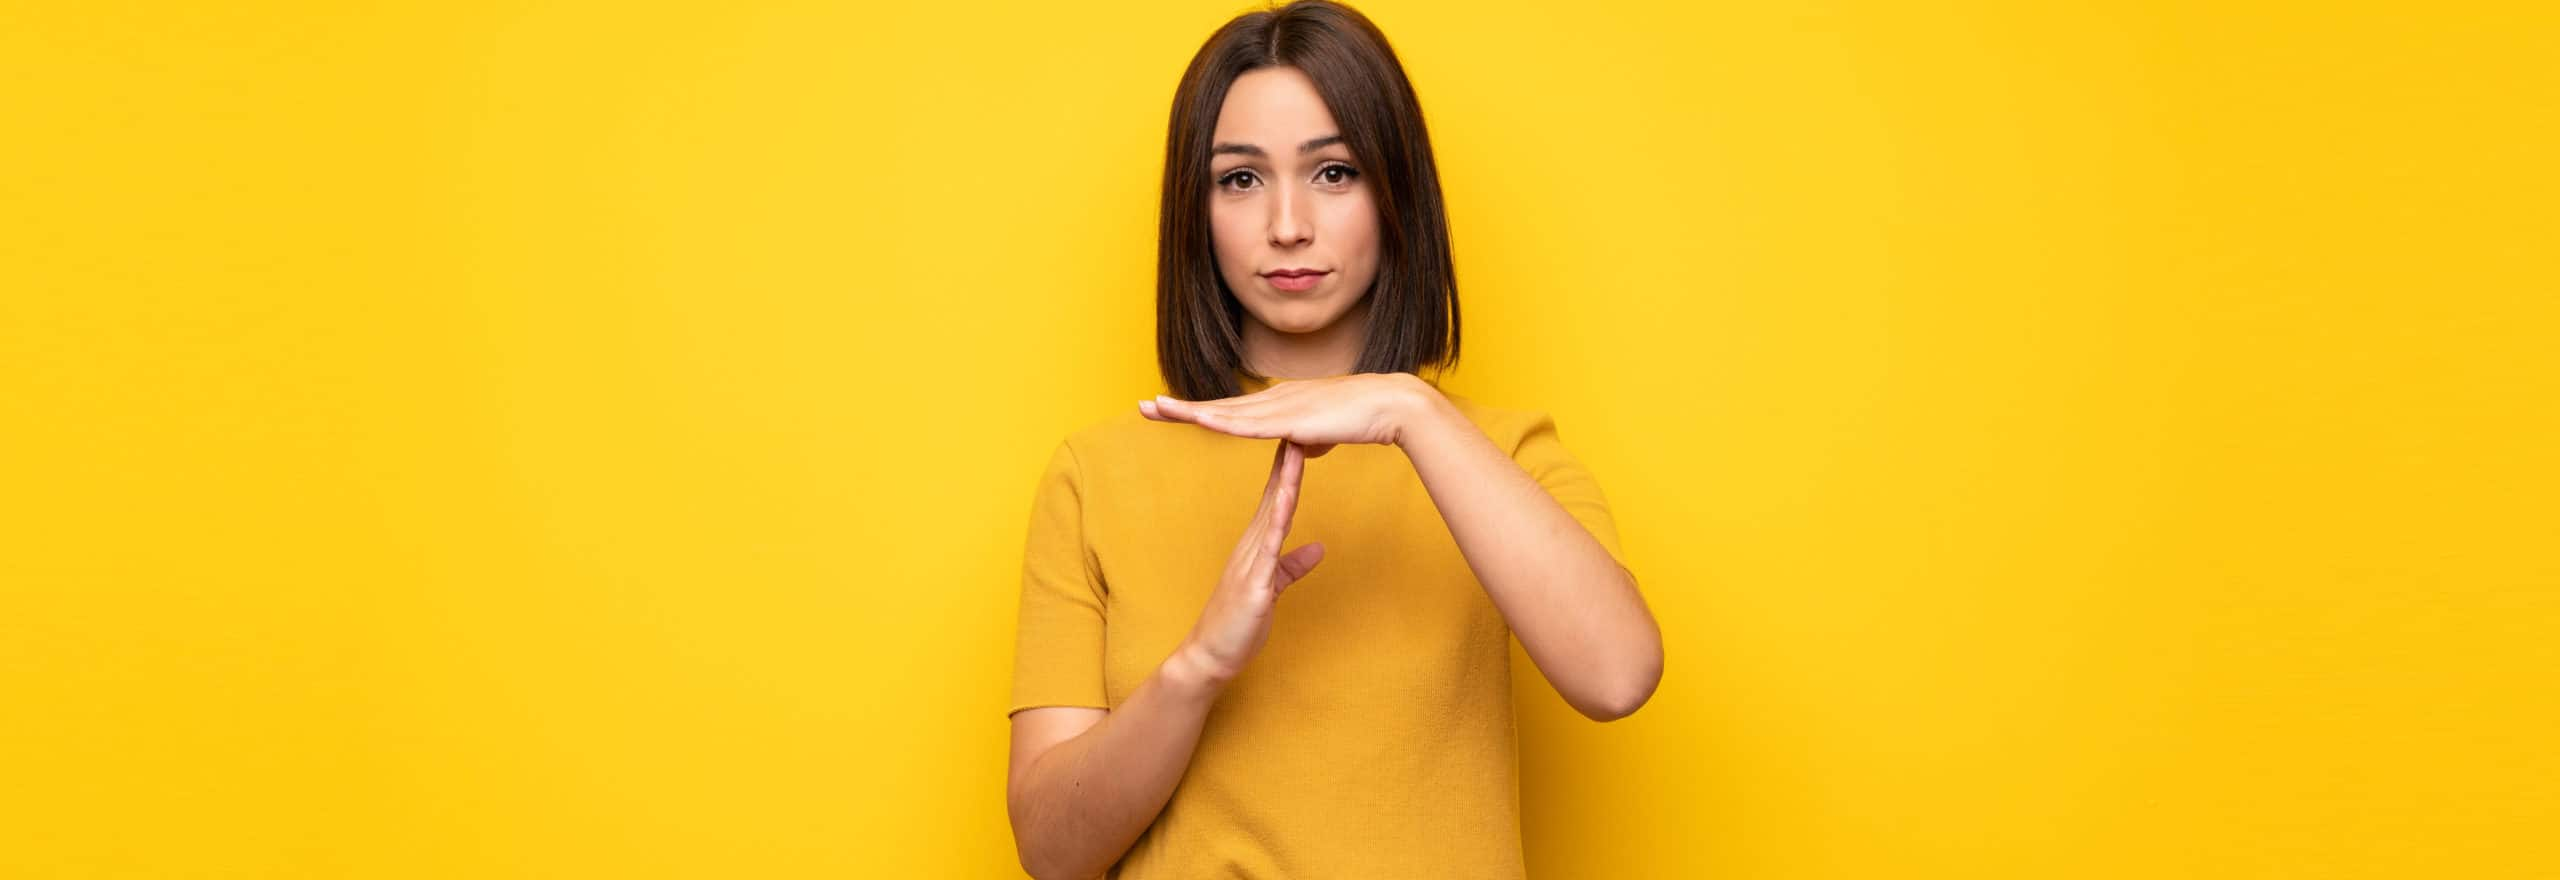 Young woman over yellow wall making time out gesture Von luismolinero